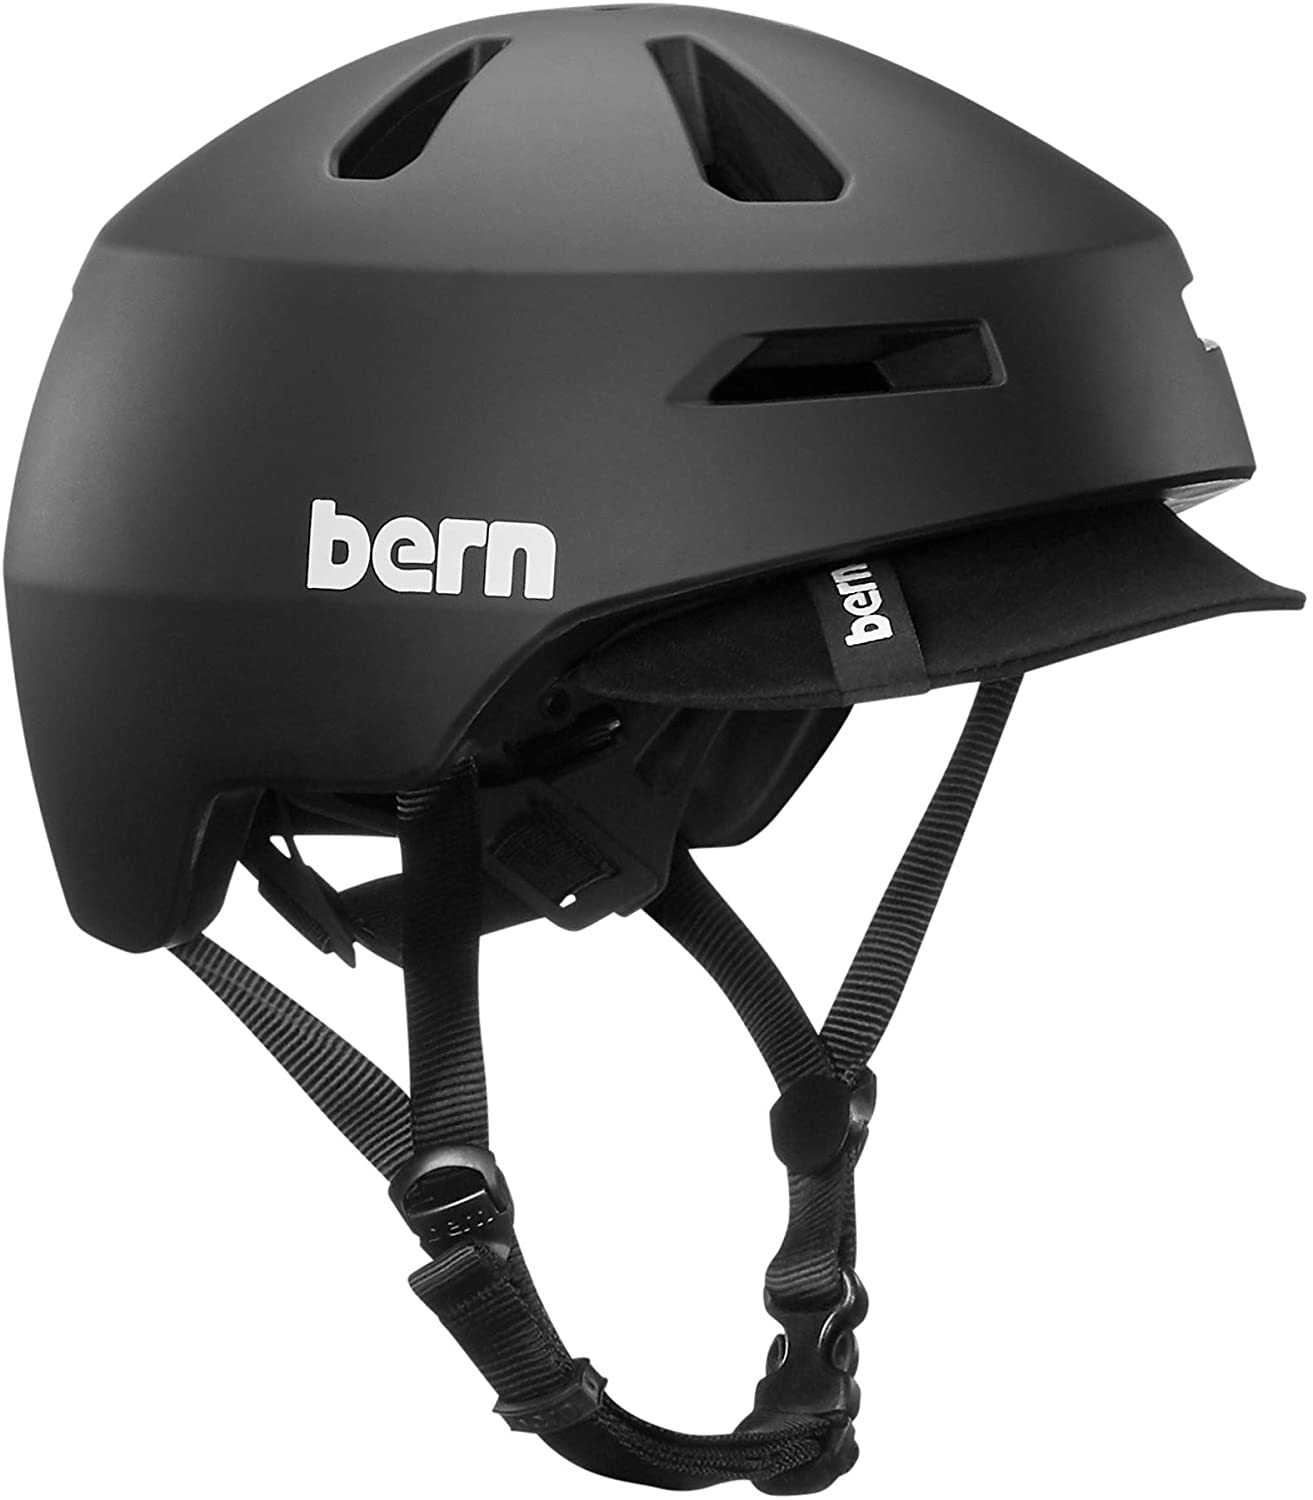 BERN Brentwood 2.0 Visor Helmet with Outlet Special price for a limited time ☆ Free Shipping